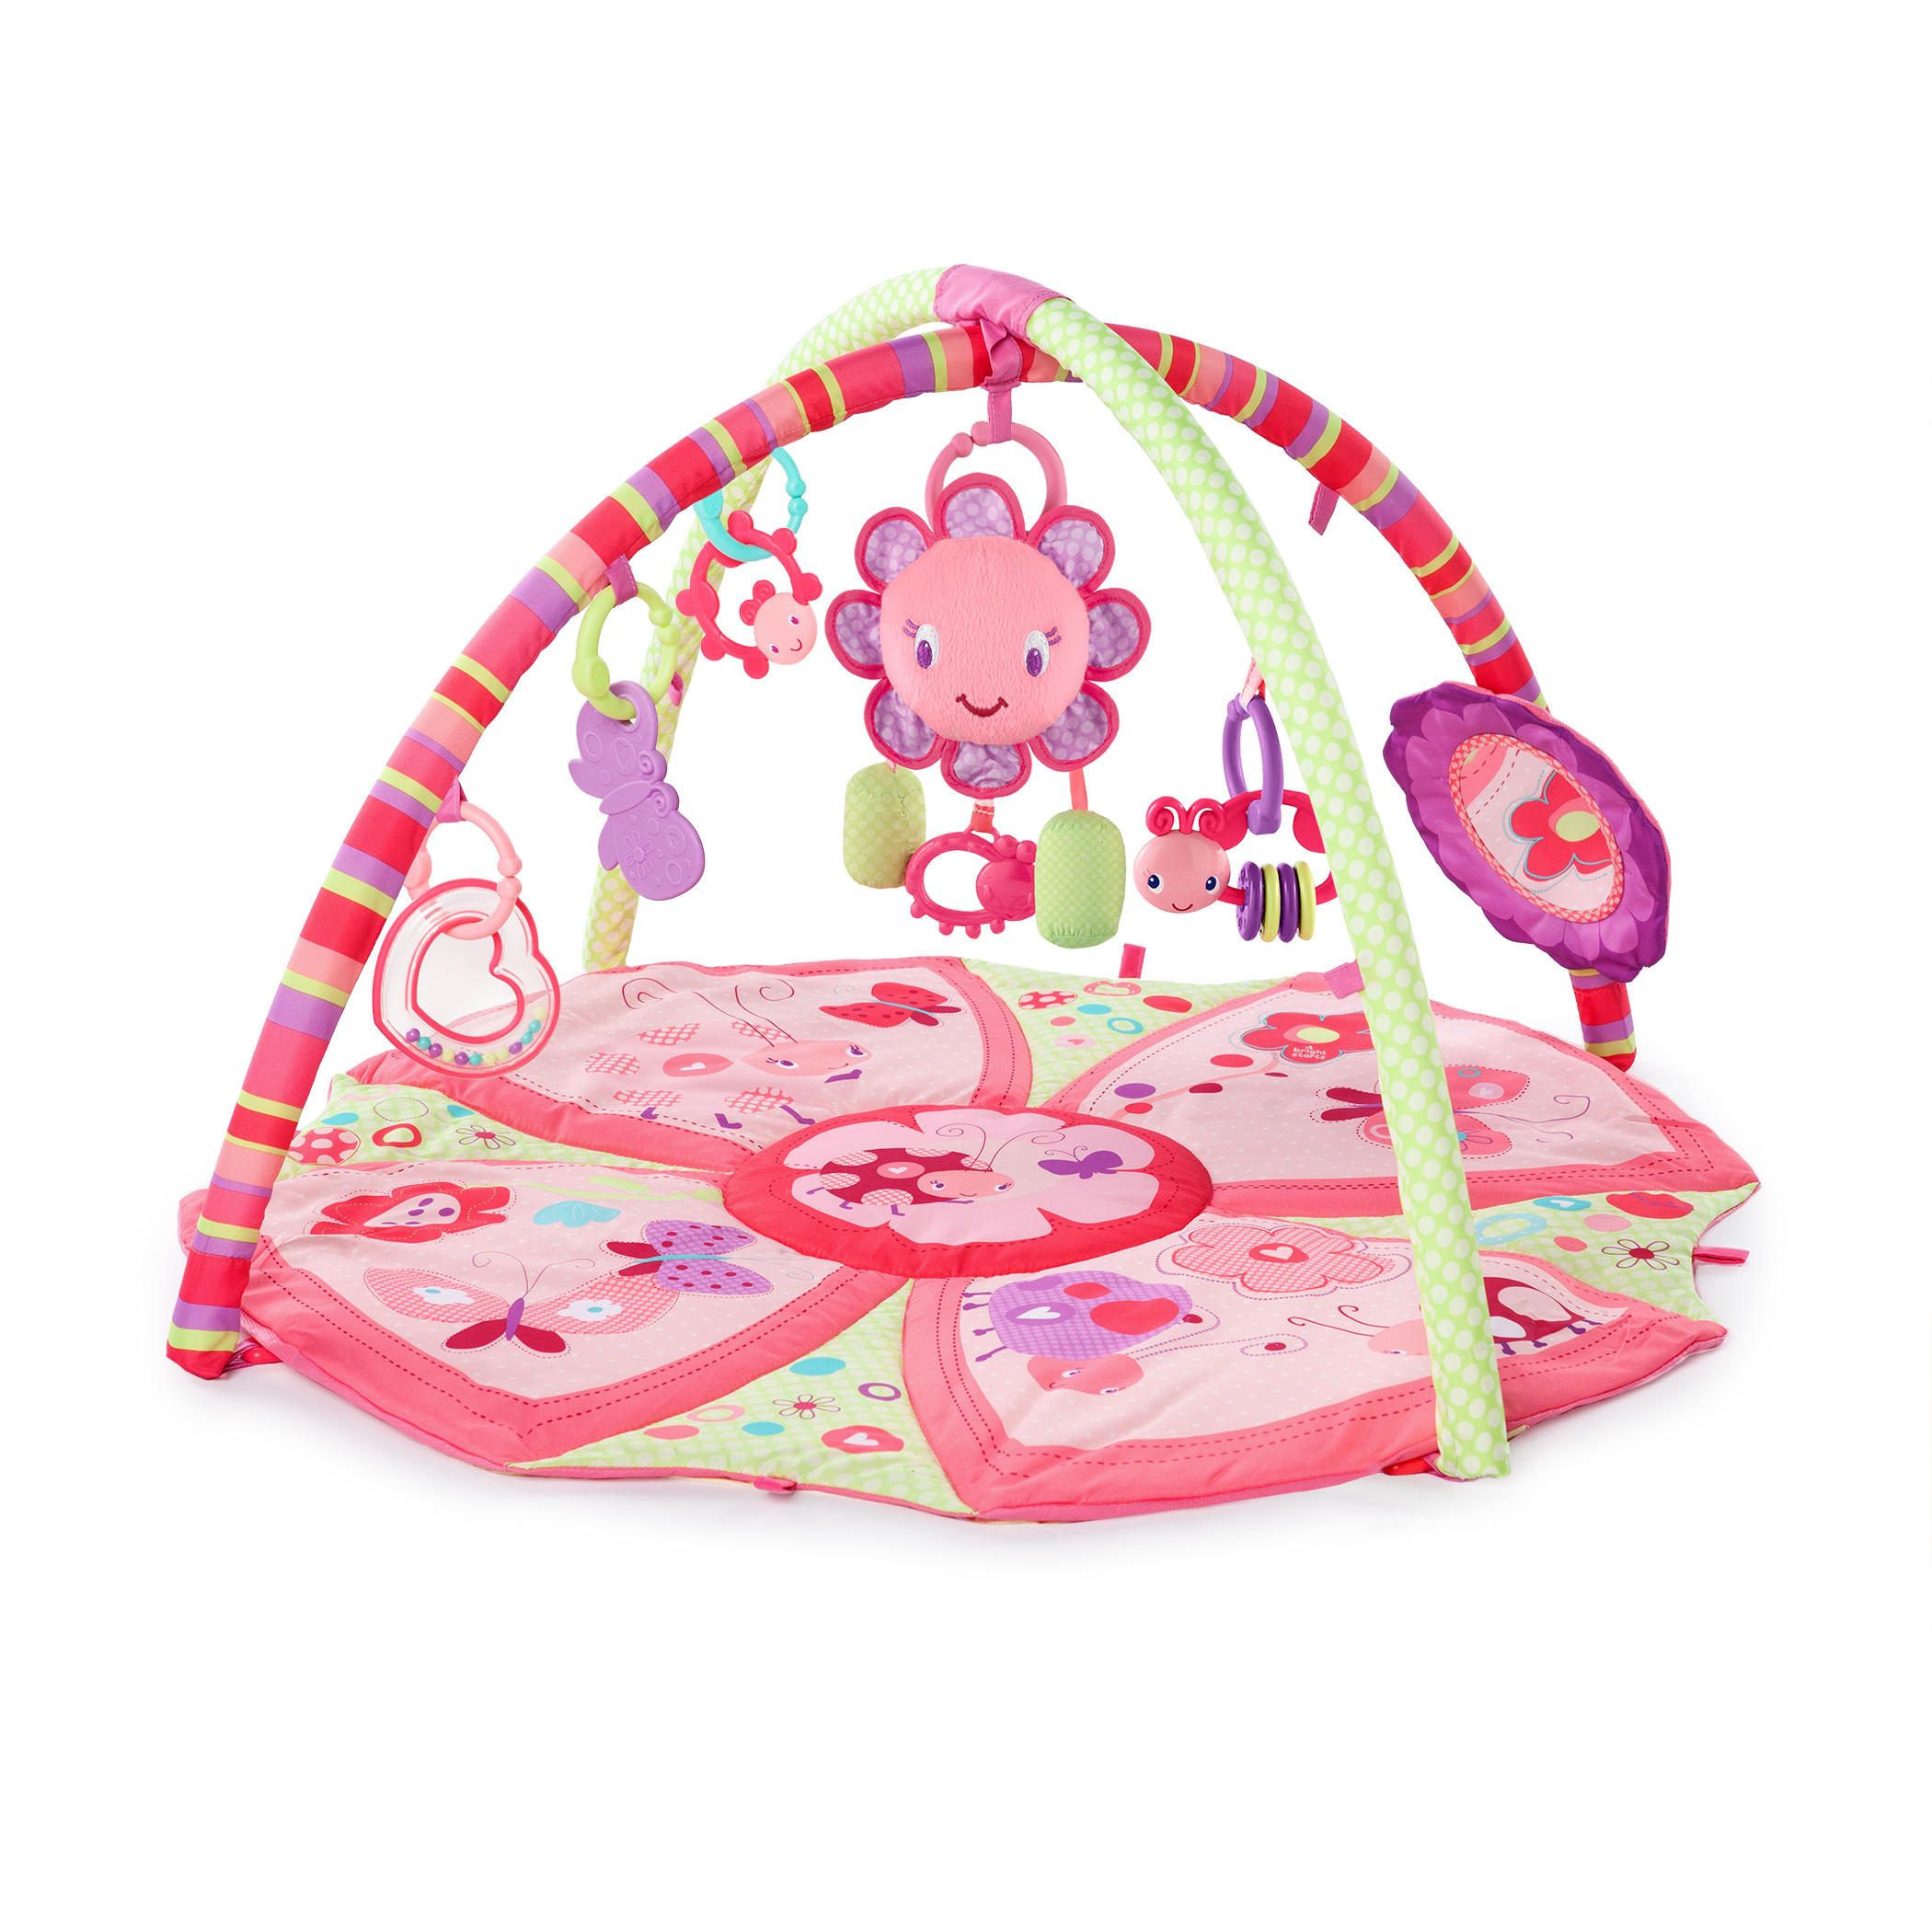 Giggle Garden™ Activity Gym